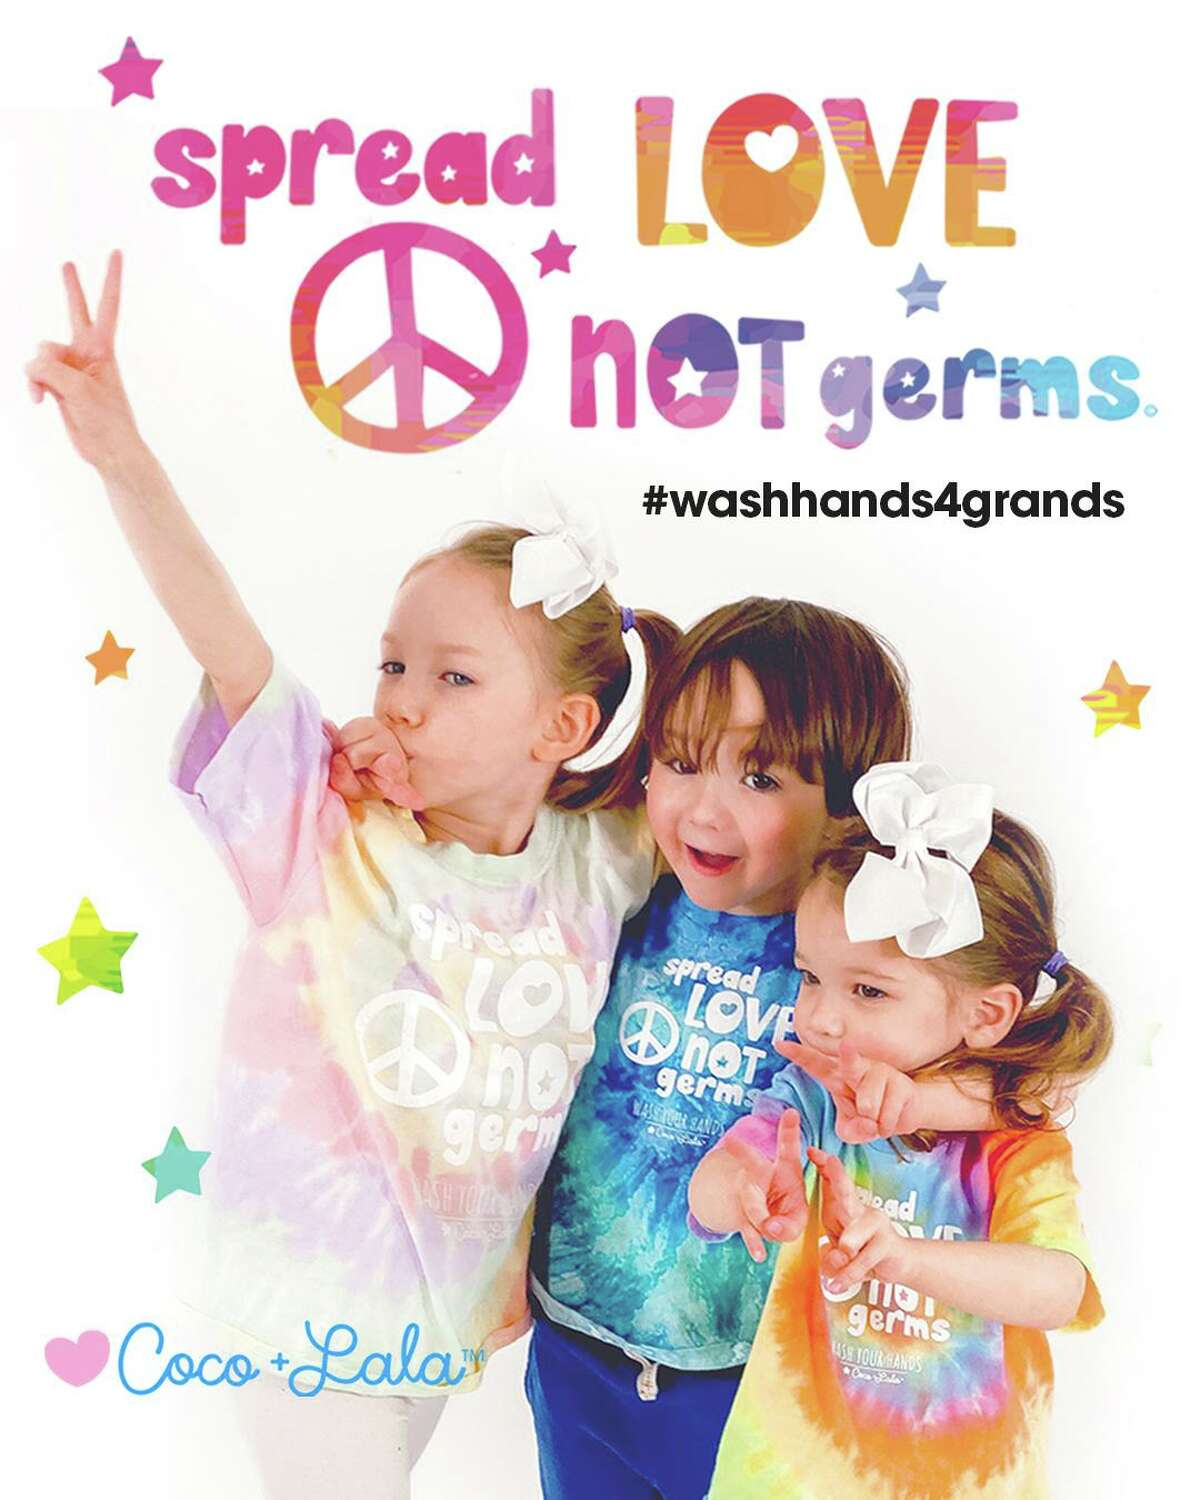 Six-year-old Leontine Doherty and her brother 4-year old Colton Doherty (with little sister Peachie) have created tie dye t-shirts to inspire us to: Spread Love Not Germs -wash your hands to help grandparents and loved ones stay safe.